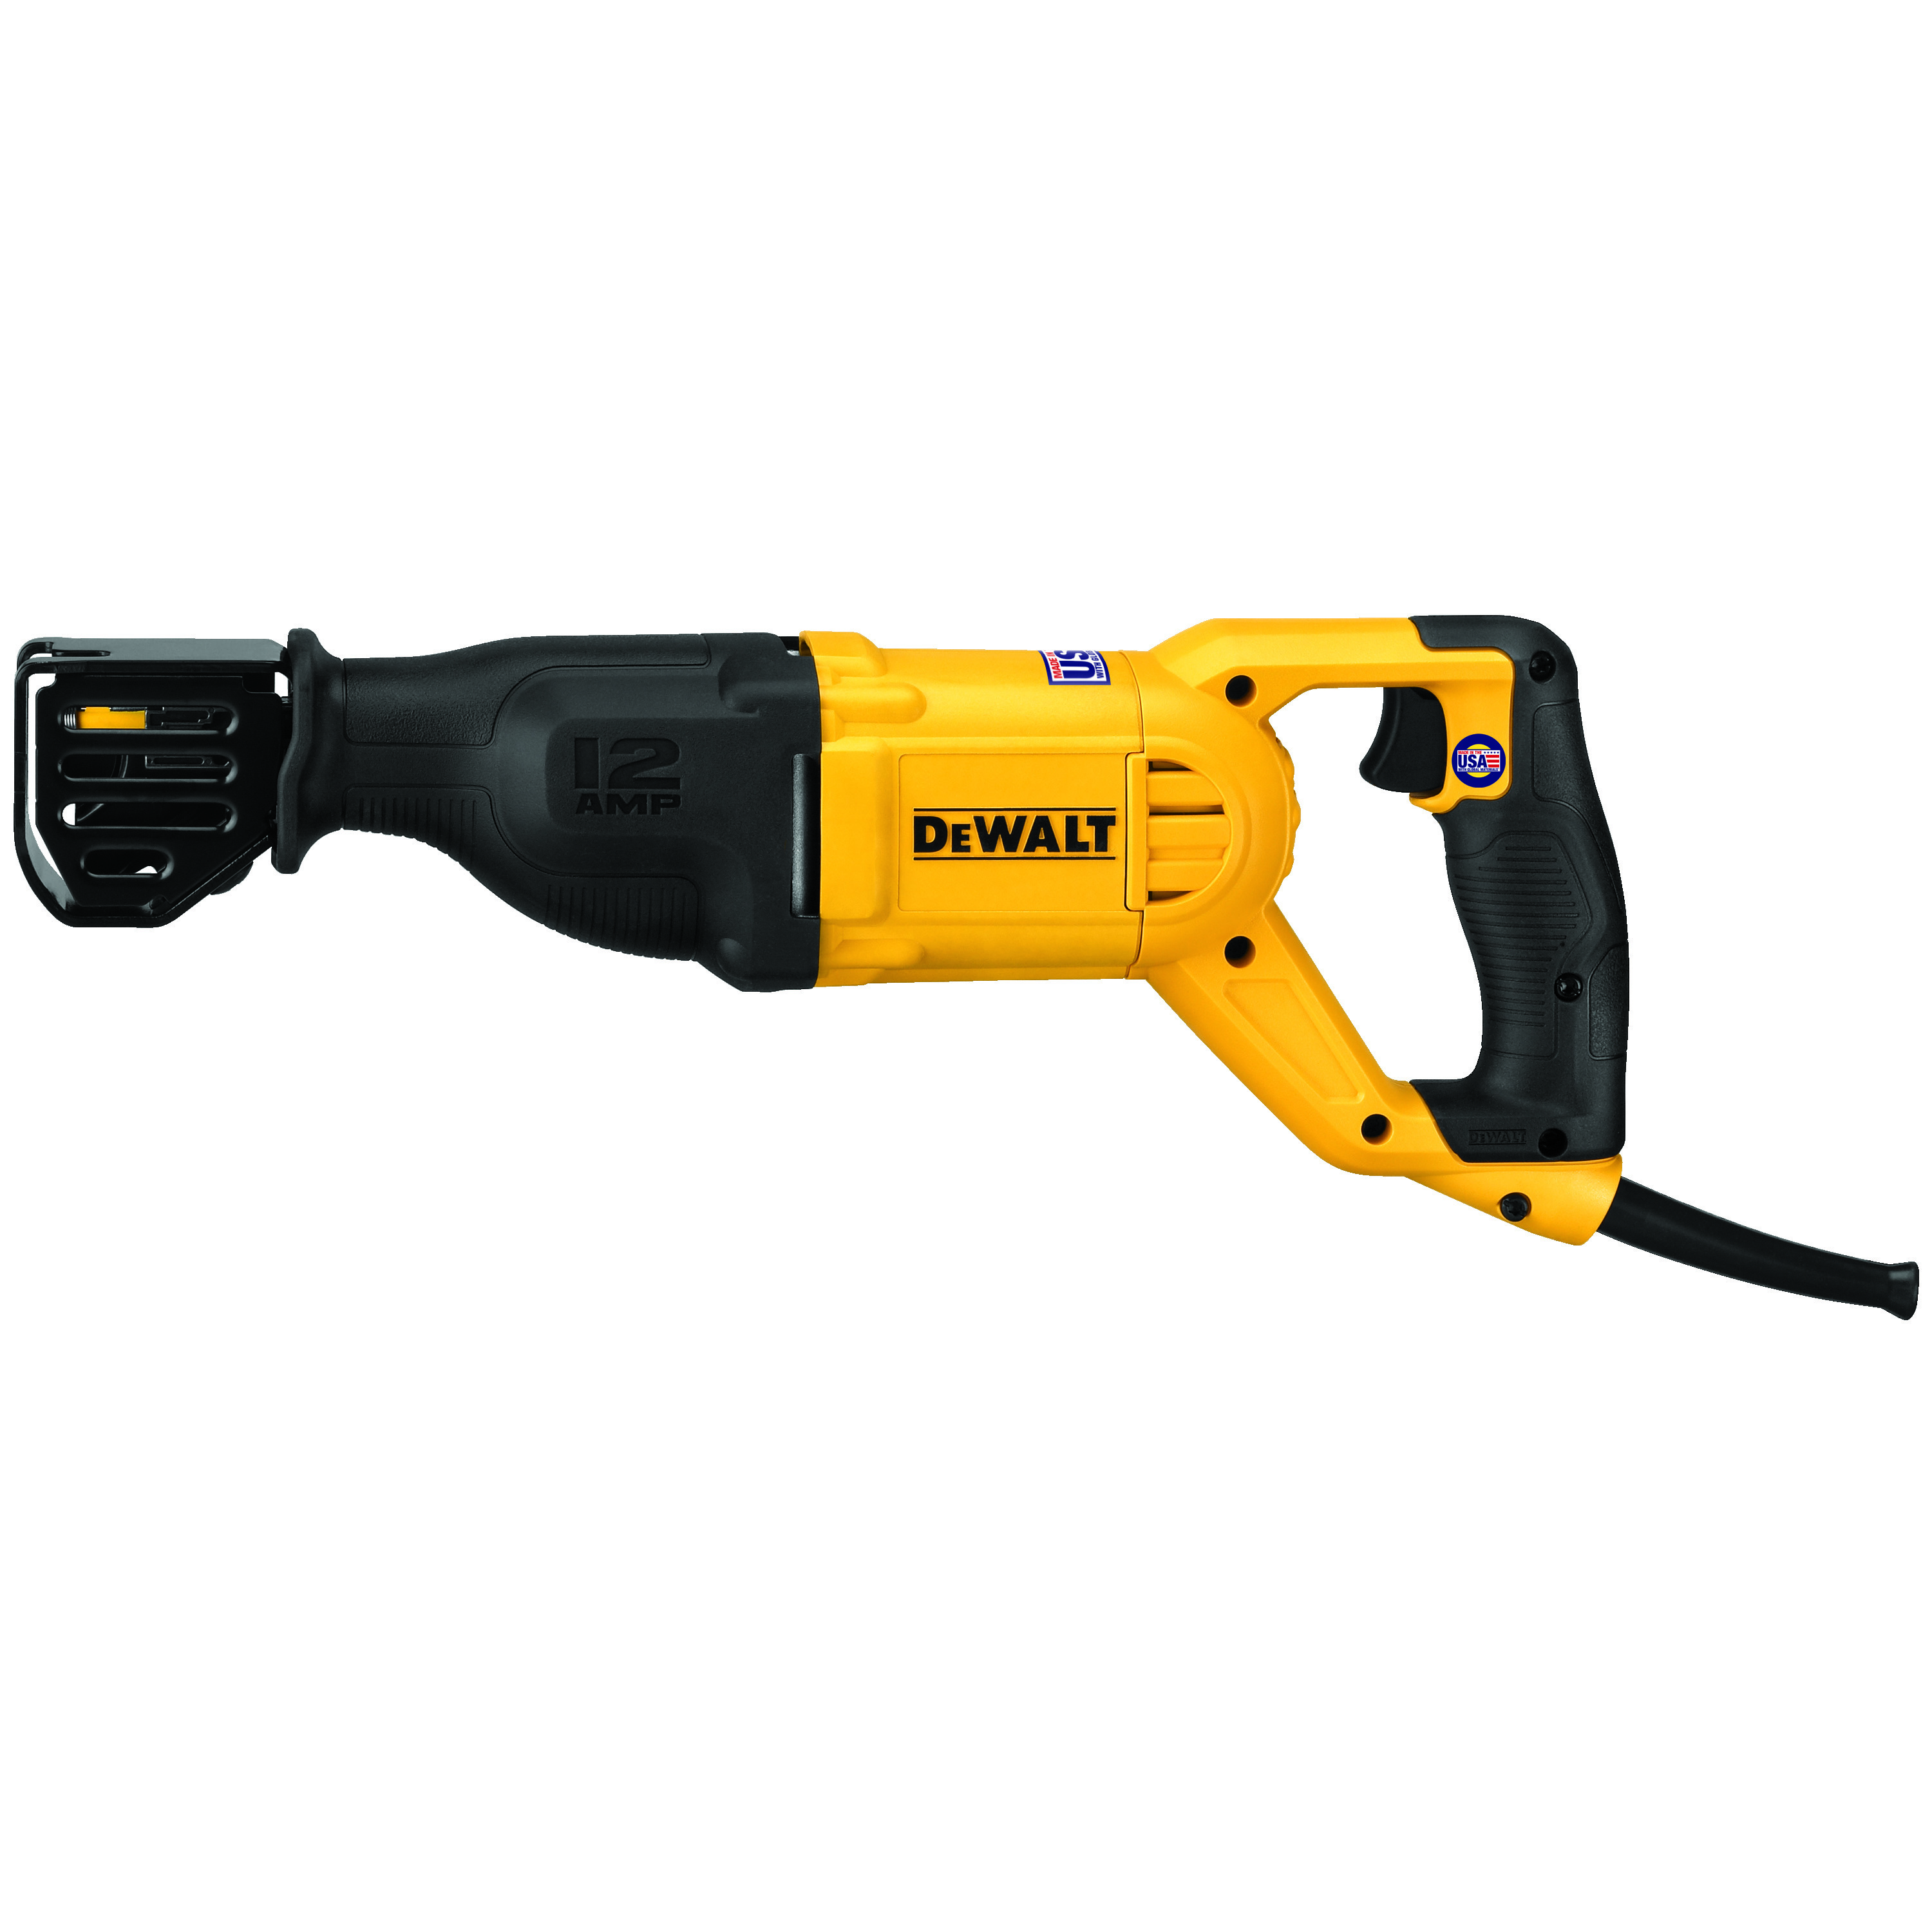 DeWALT® DWE305 Corded Reciprocating Saw, 1-1/8 in L, 0 to 2900 spm, 17-1/2 in OAL, Tool Only